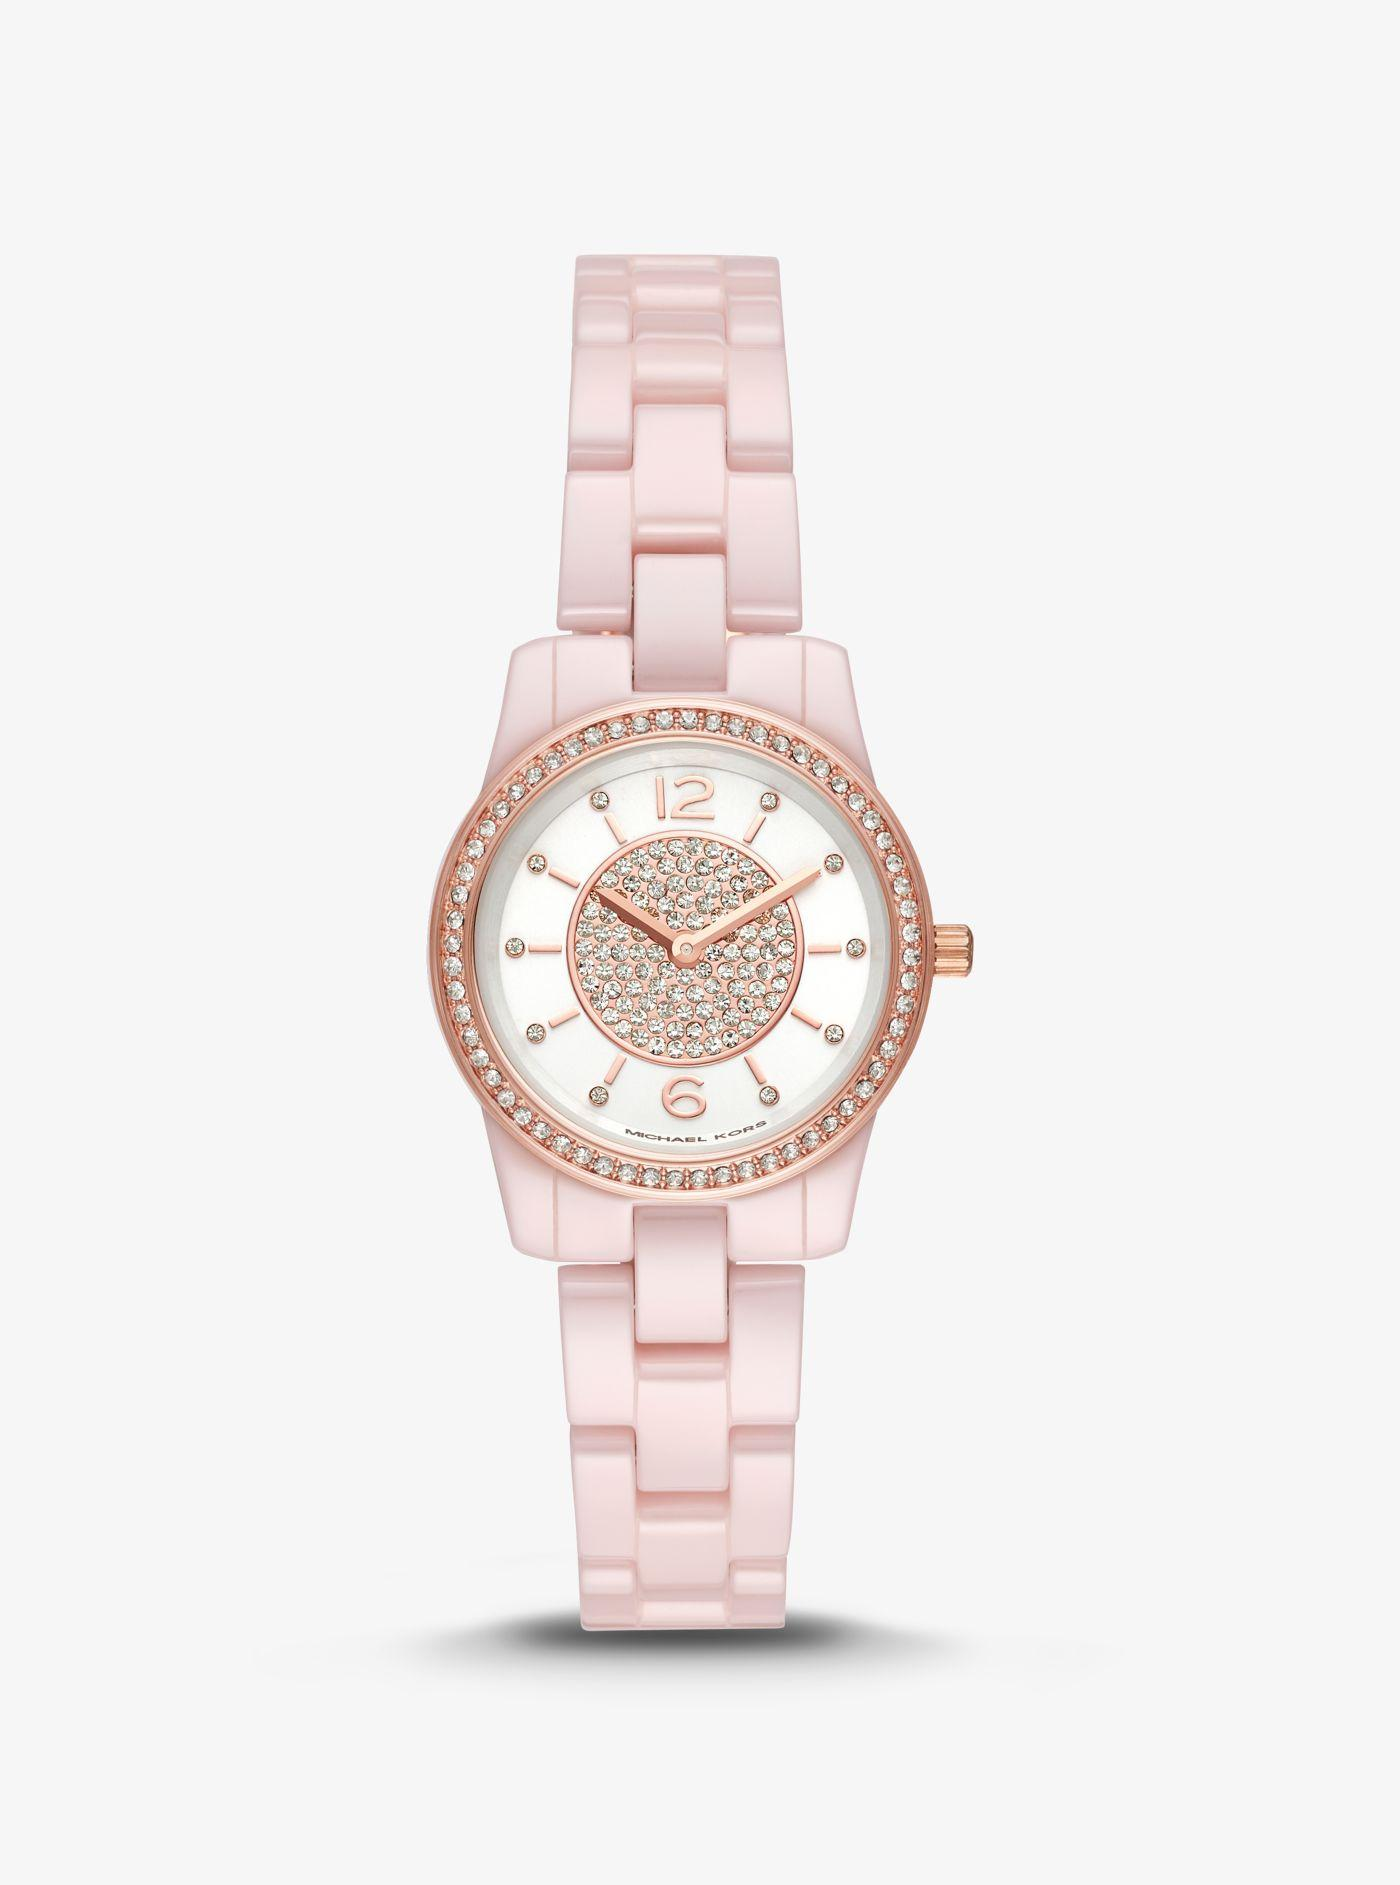 cab8cbed40ff Lyst - Michael Kors Petite Runway Pavé Ceramic Watch in Pink